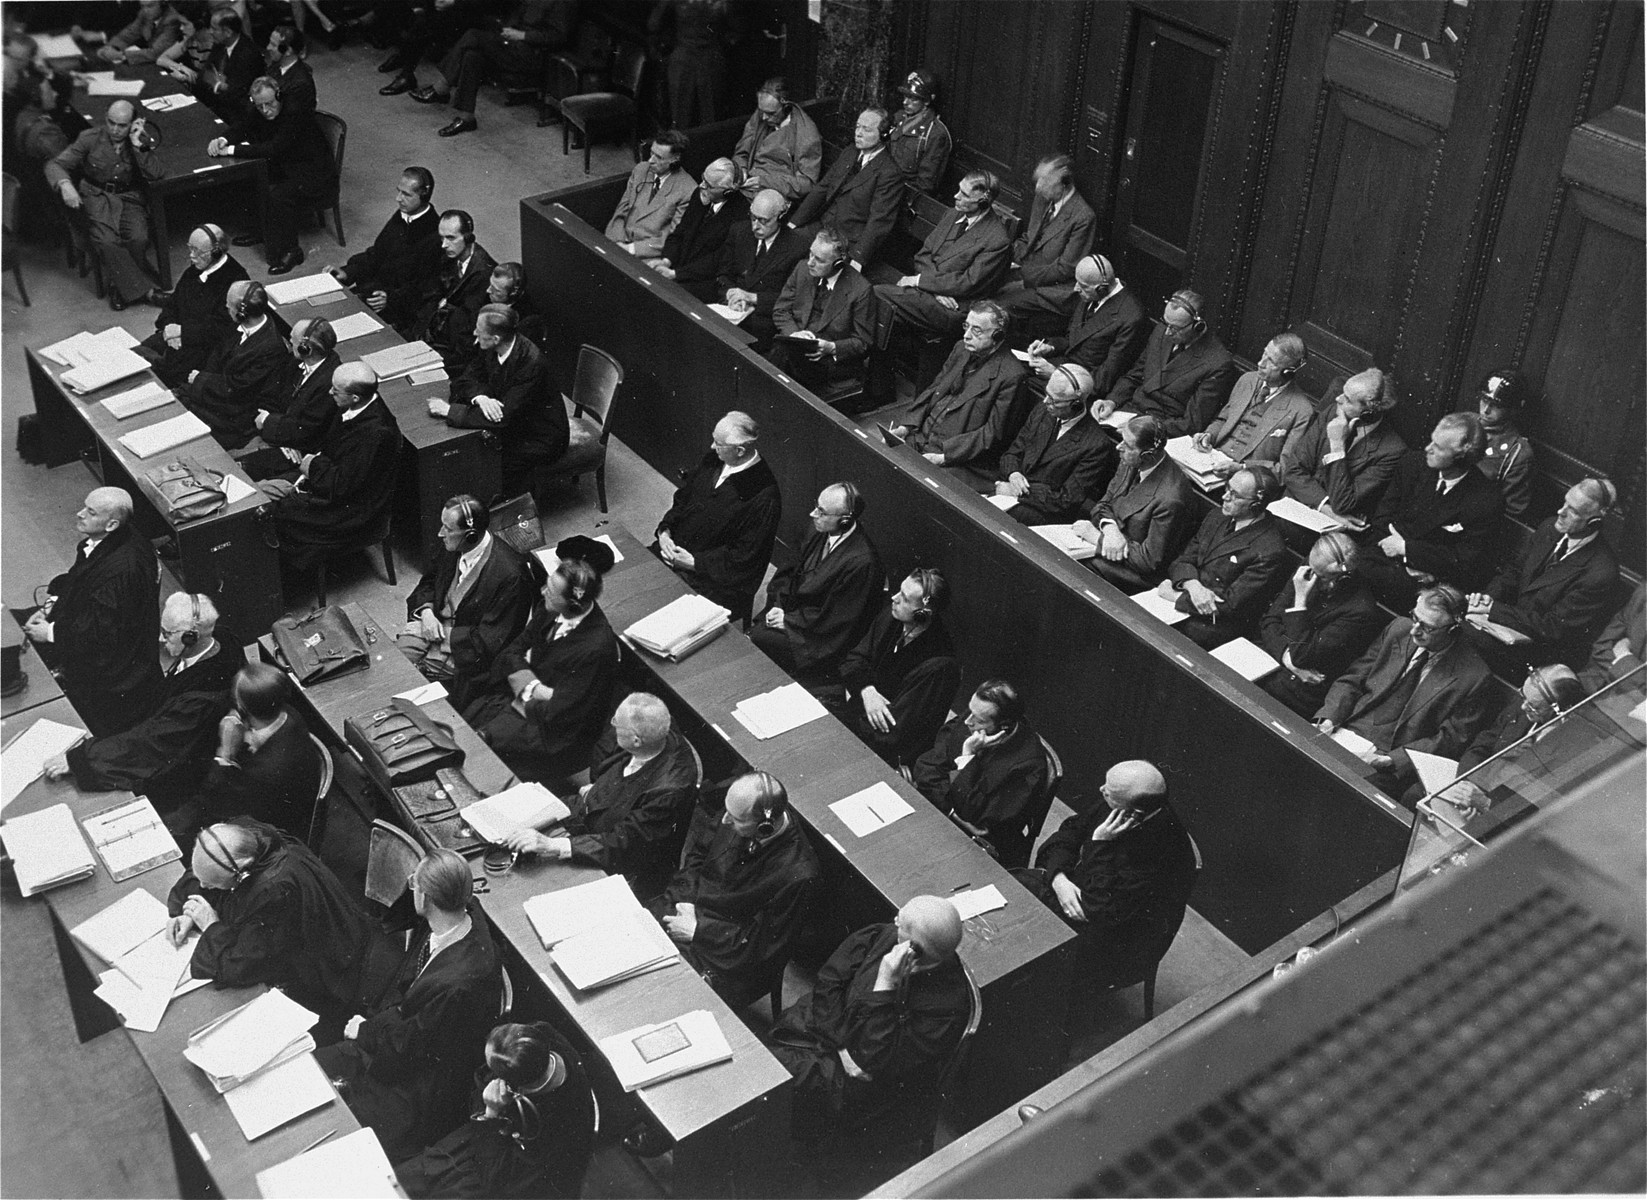 The defendants in the dock and their lawyers follow the proceedings of the I.G. Farben Trial.